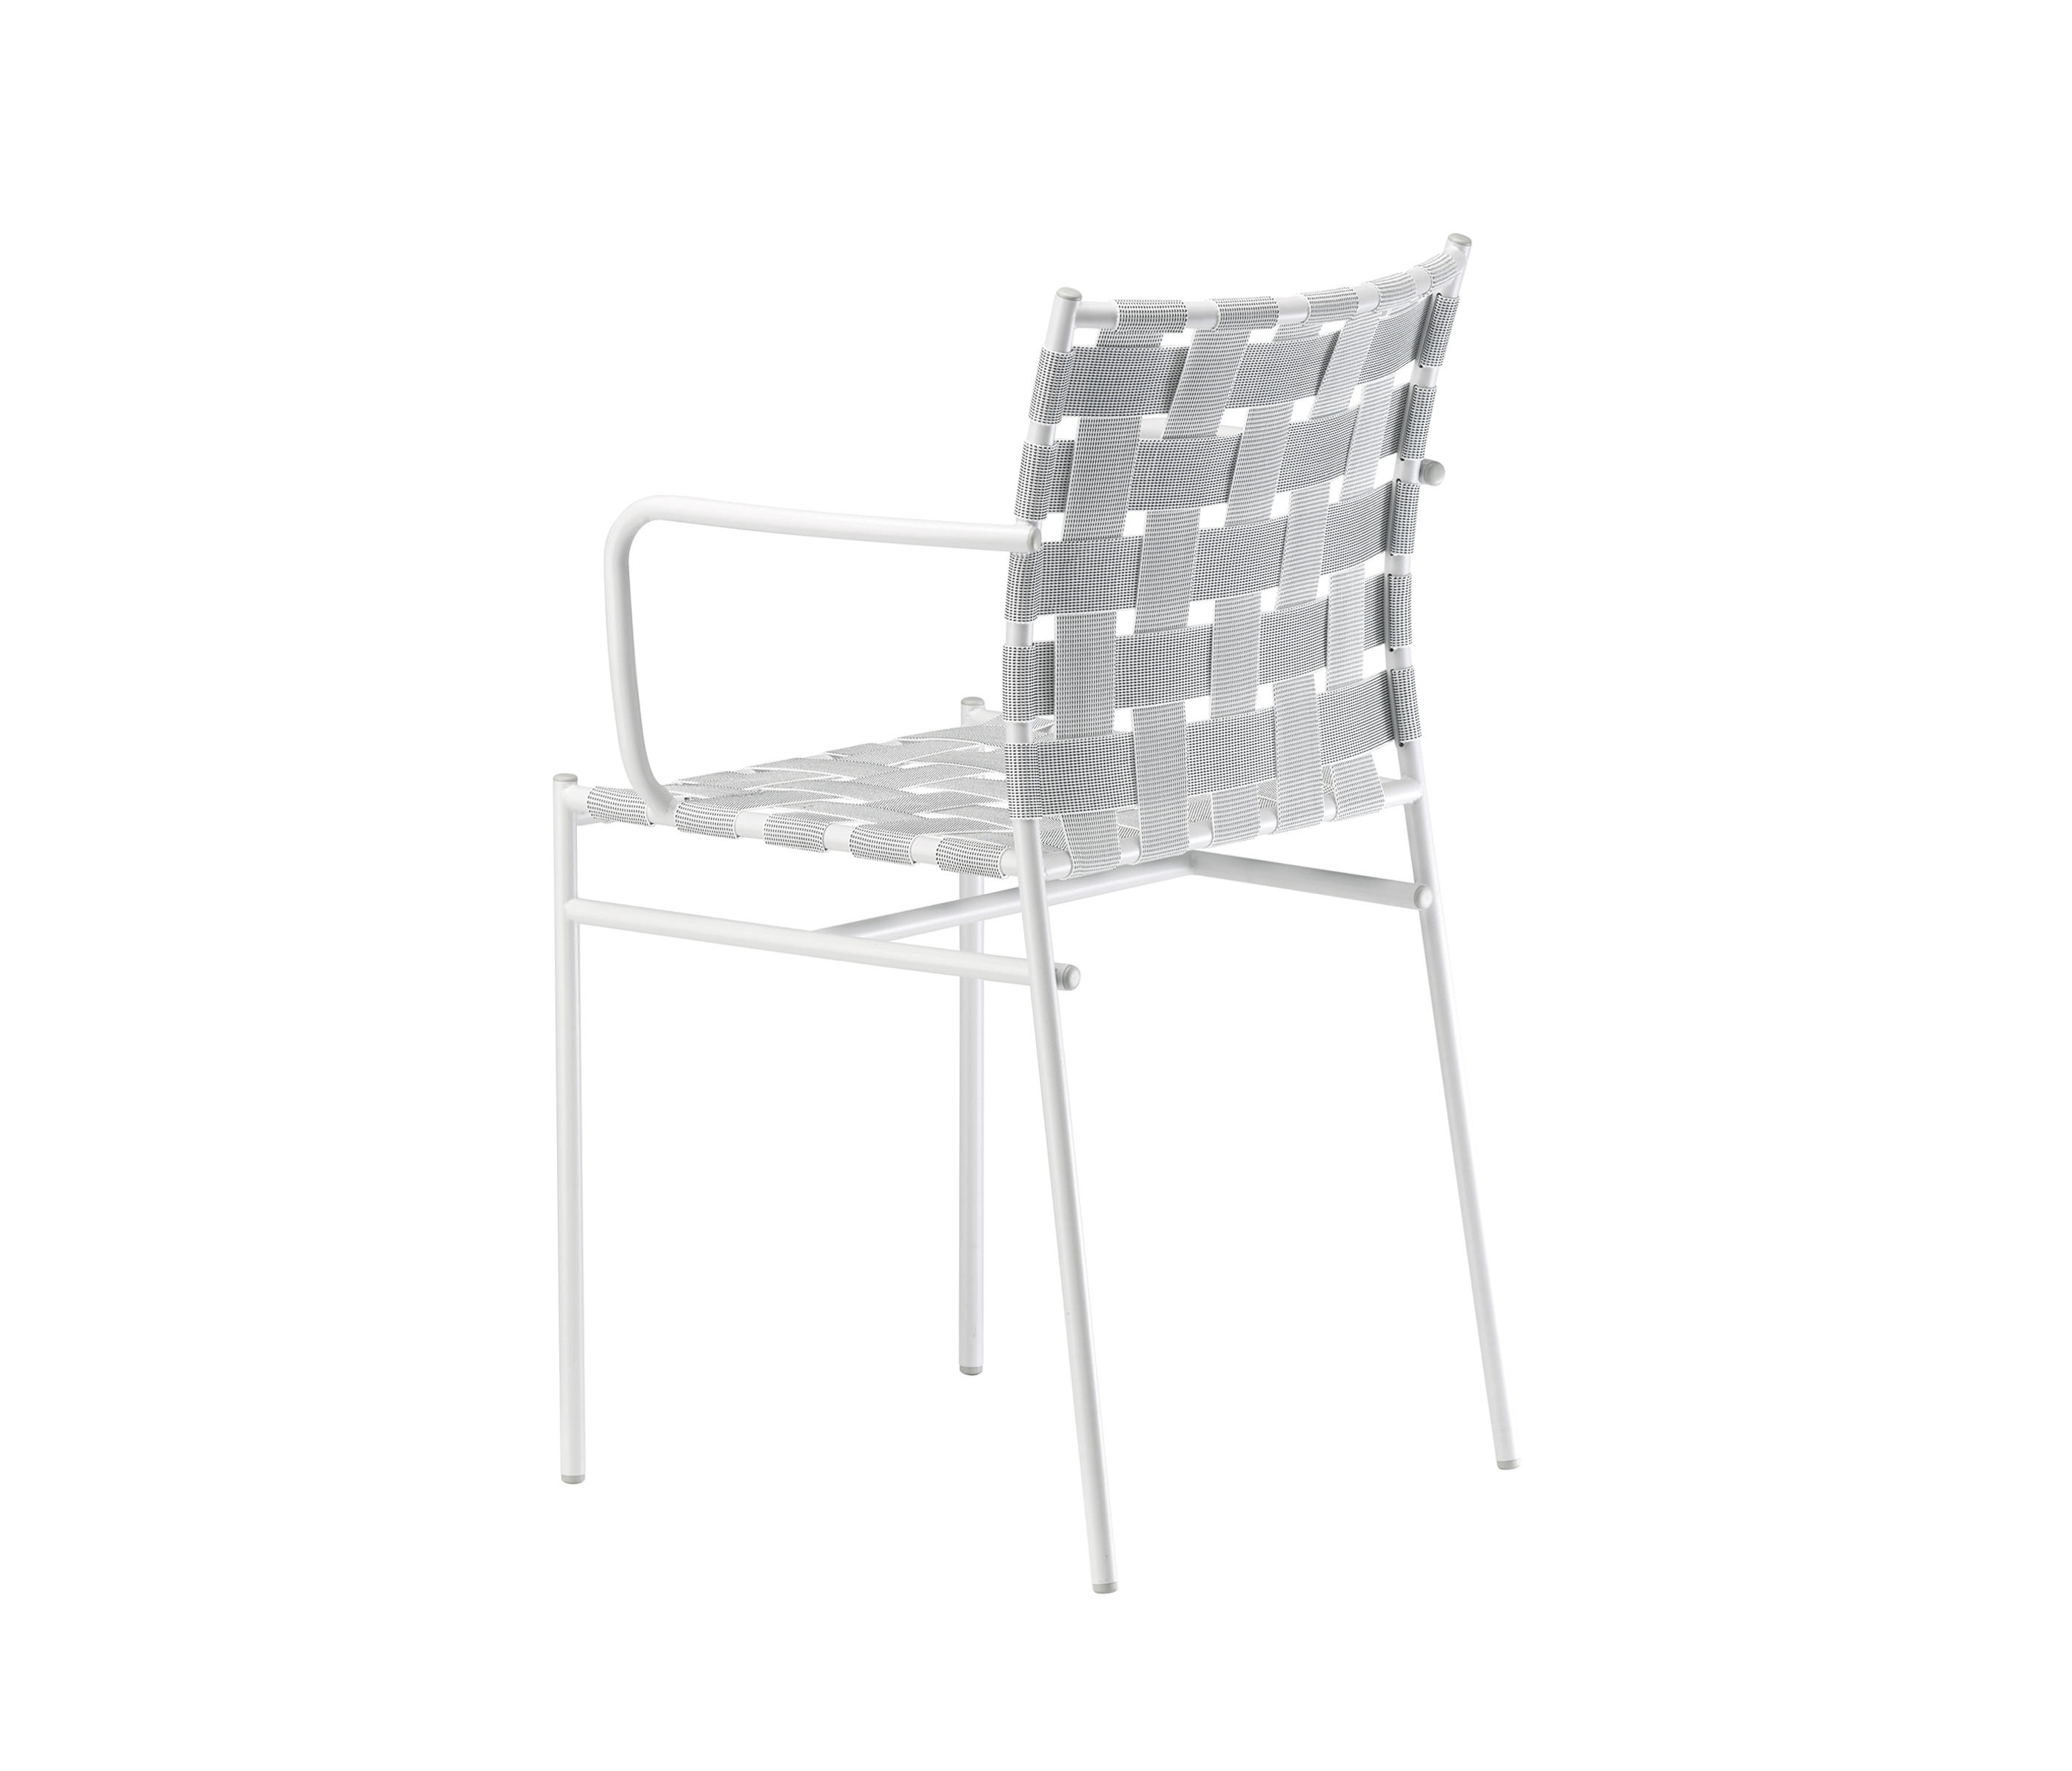 Sedia Tagliatelle Alias.Tagliatelle Armrest 716 Chairs From Alias Architonic